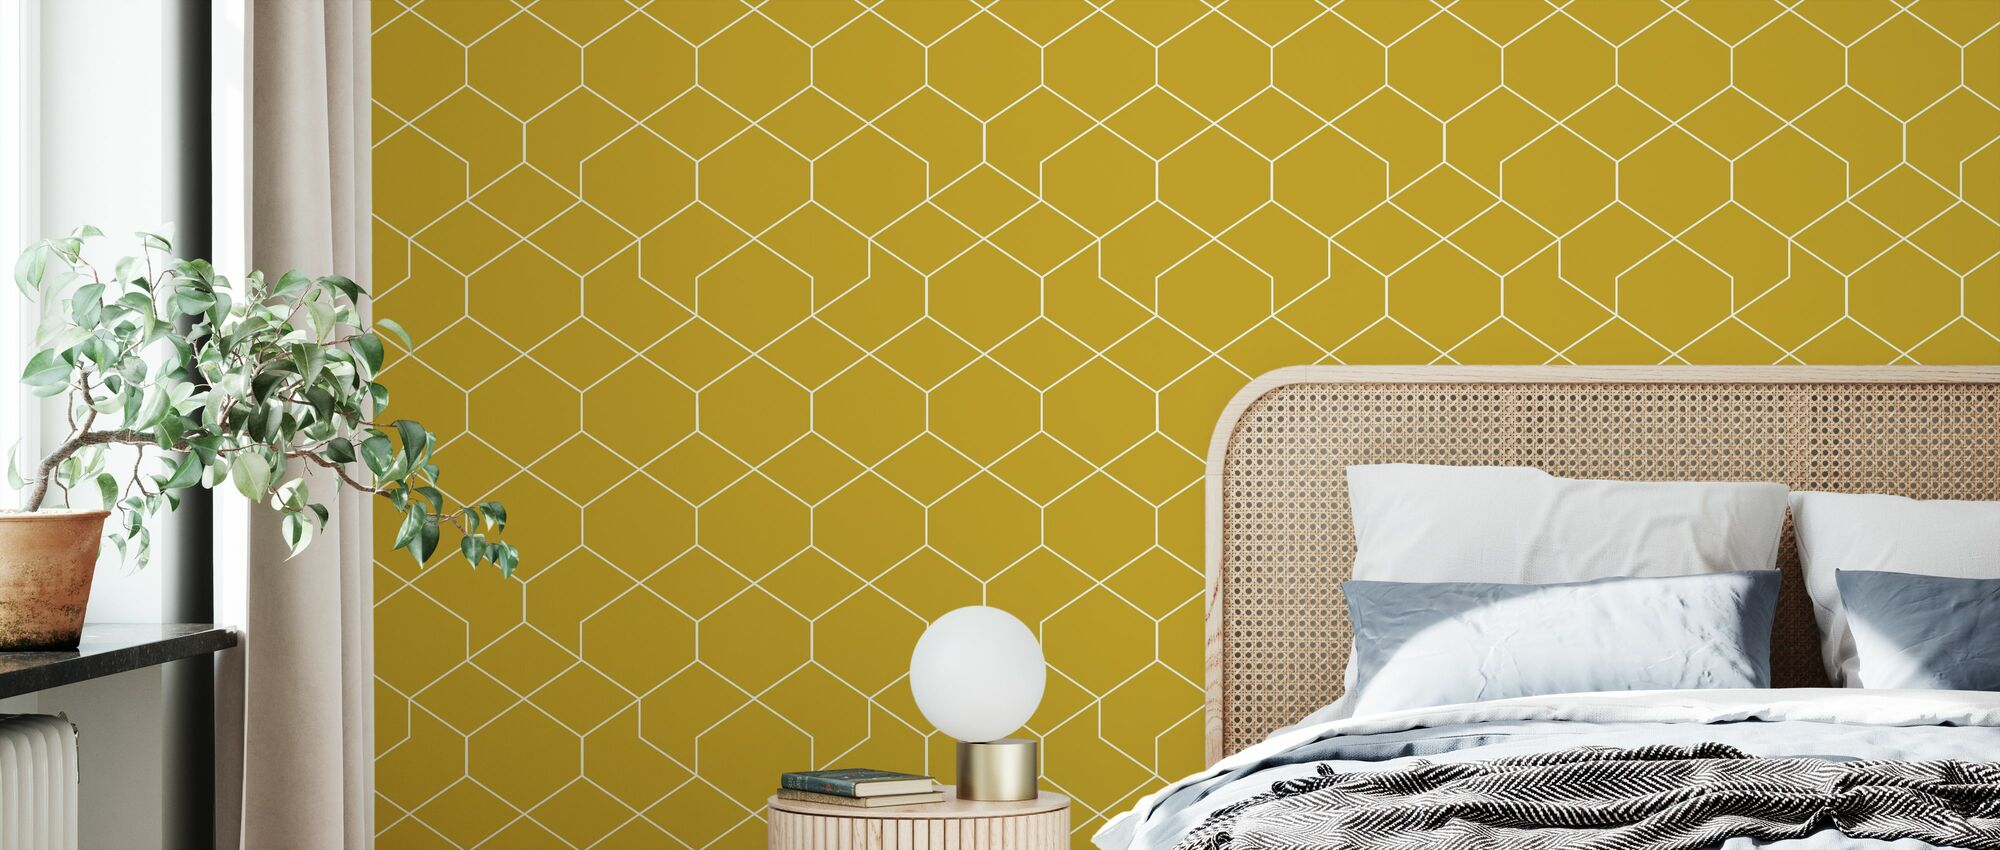 Honeycomb Yellow - Wallpaper - Bedroom